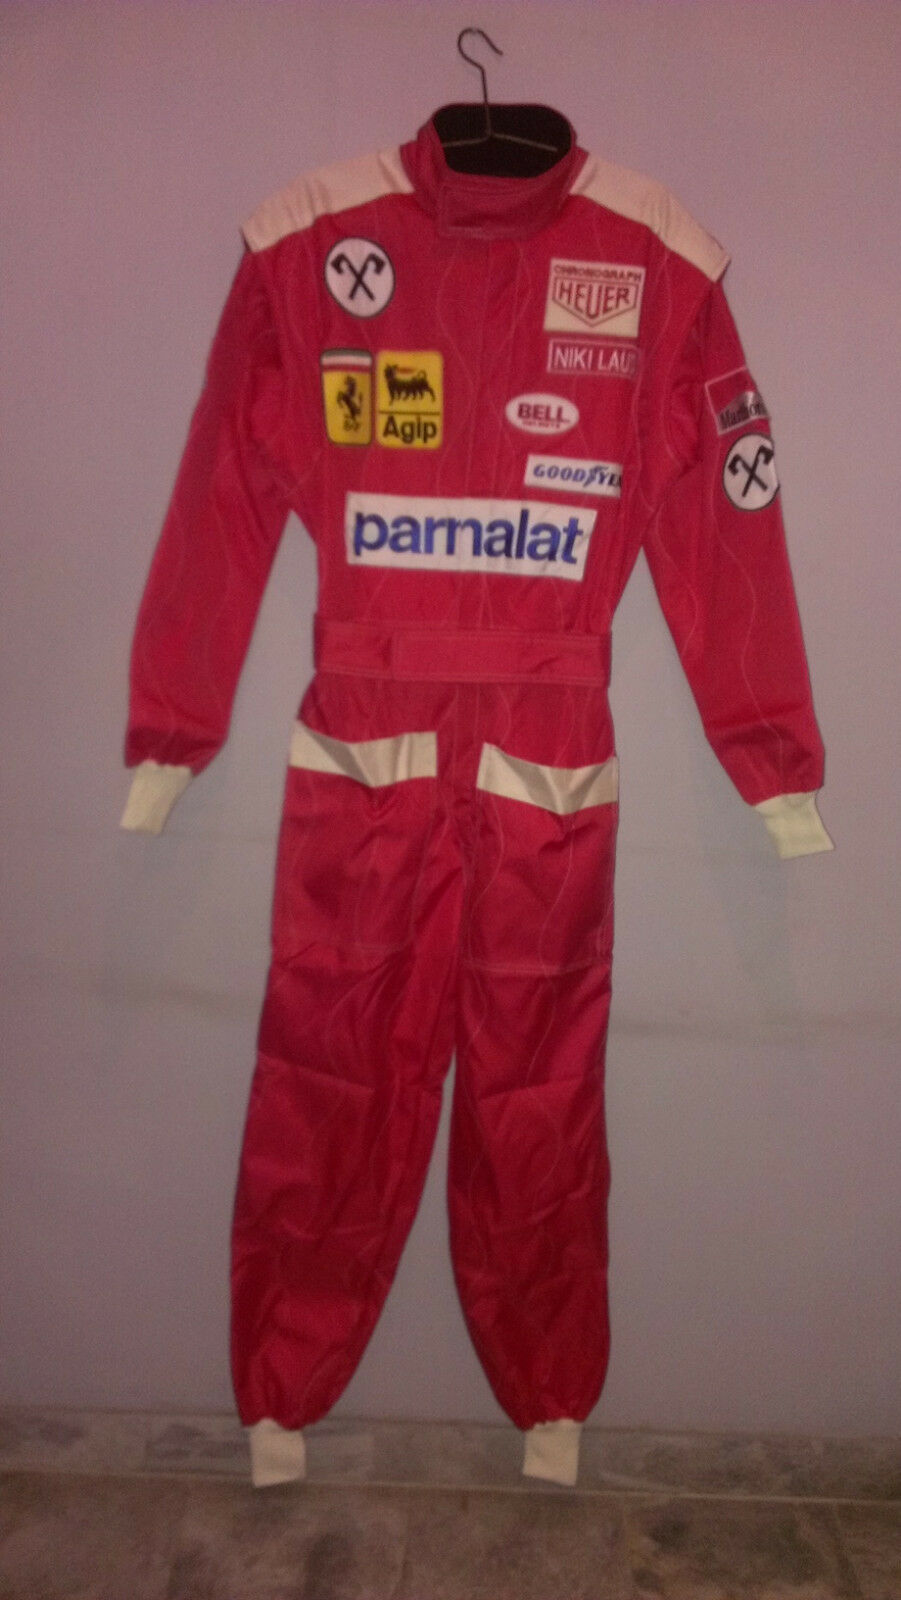 Niki Lauda Kart race suit CIK FIA Level 2 approved